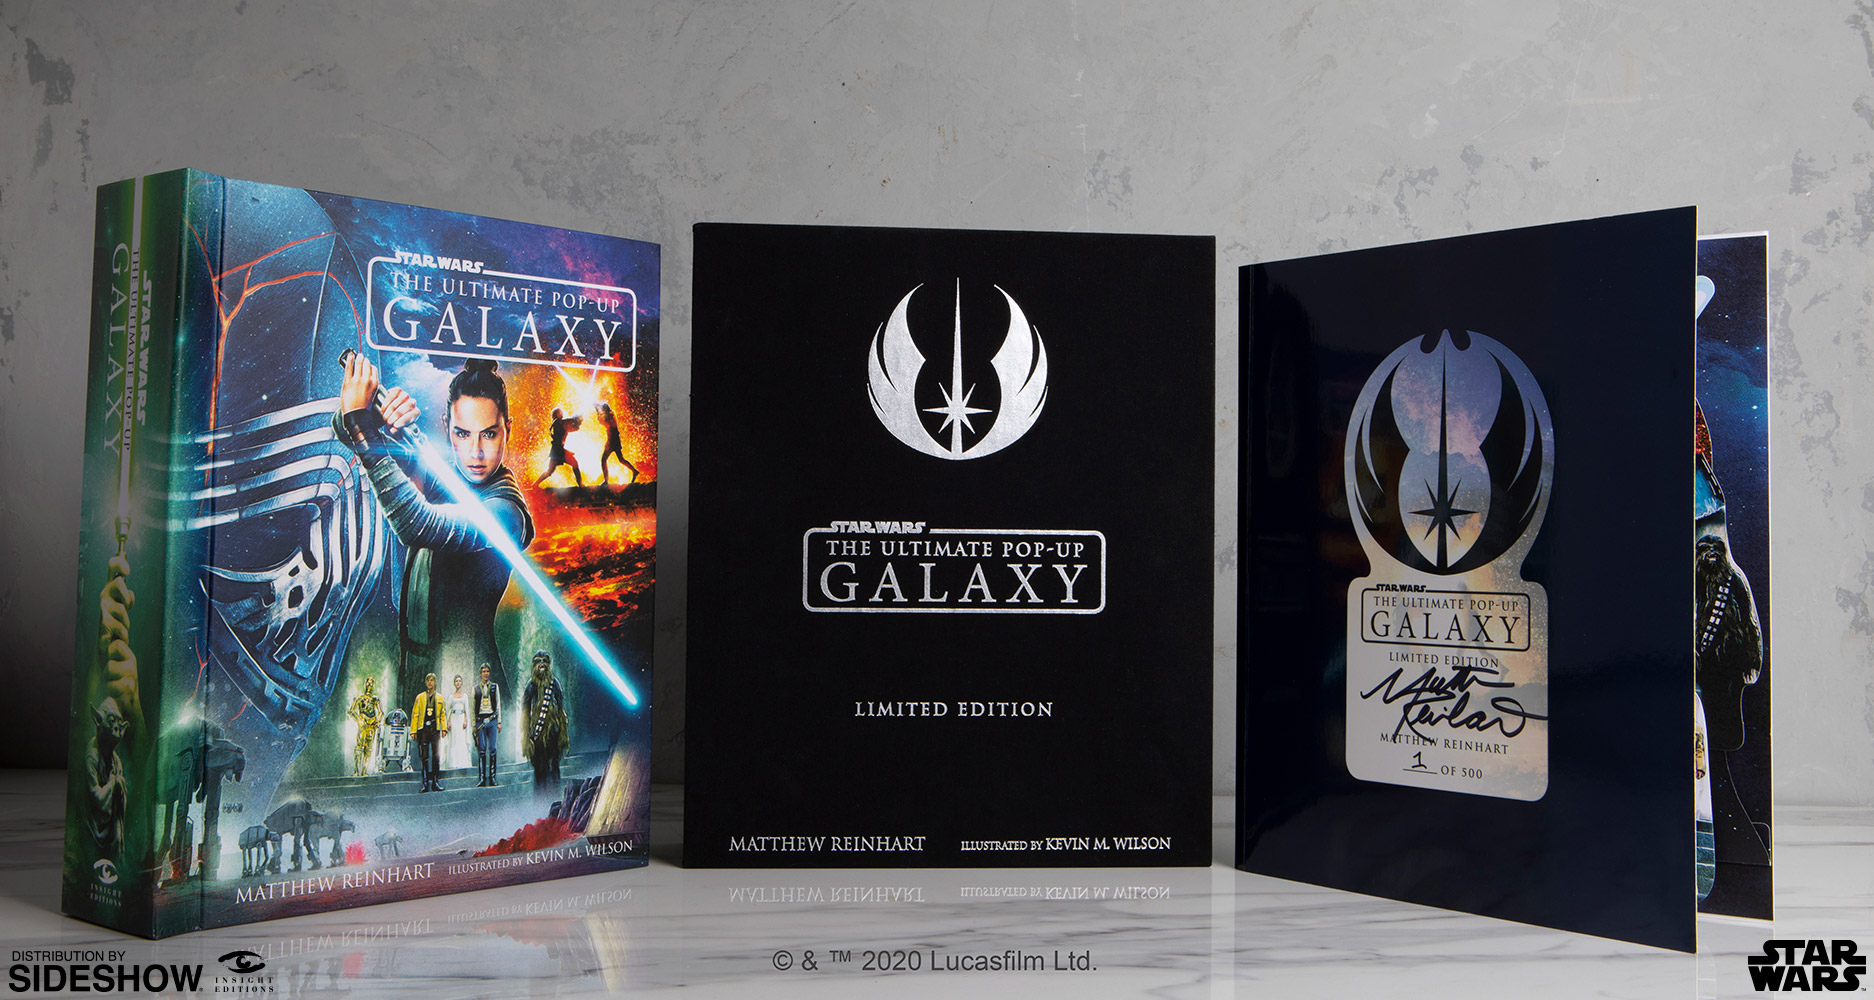 SW The Ultimate Pop-Up Galaxy (Limited Edition) Book 3